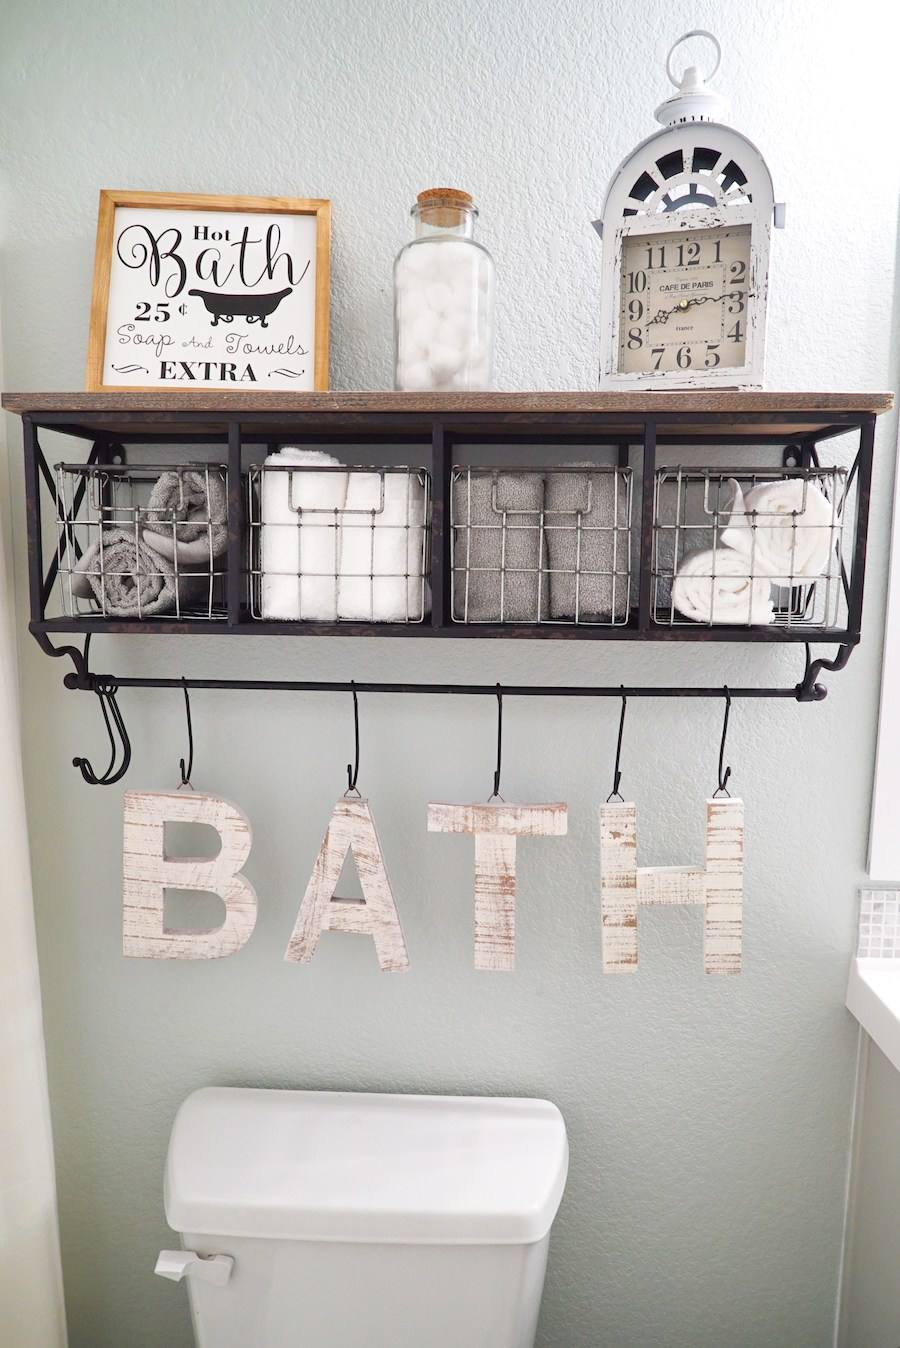 bathroom shelf ideas for more organized home abovetoilet floating shelves over toilet shelving corner book stand desk with bookshelf diy cleats rack cool shoe racks inch hooks